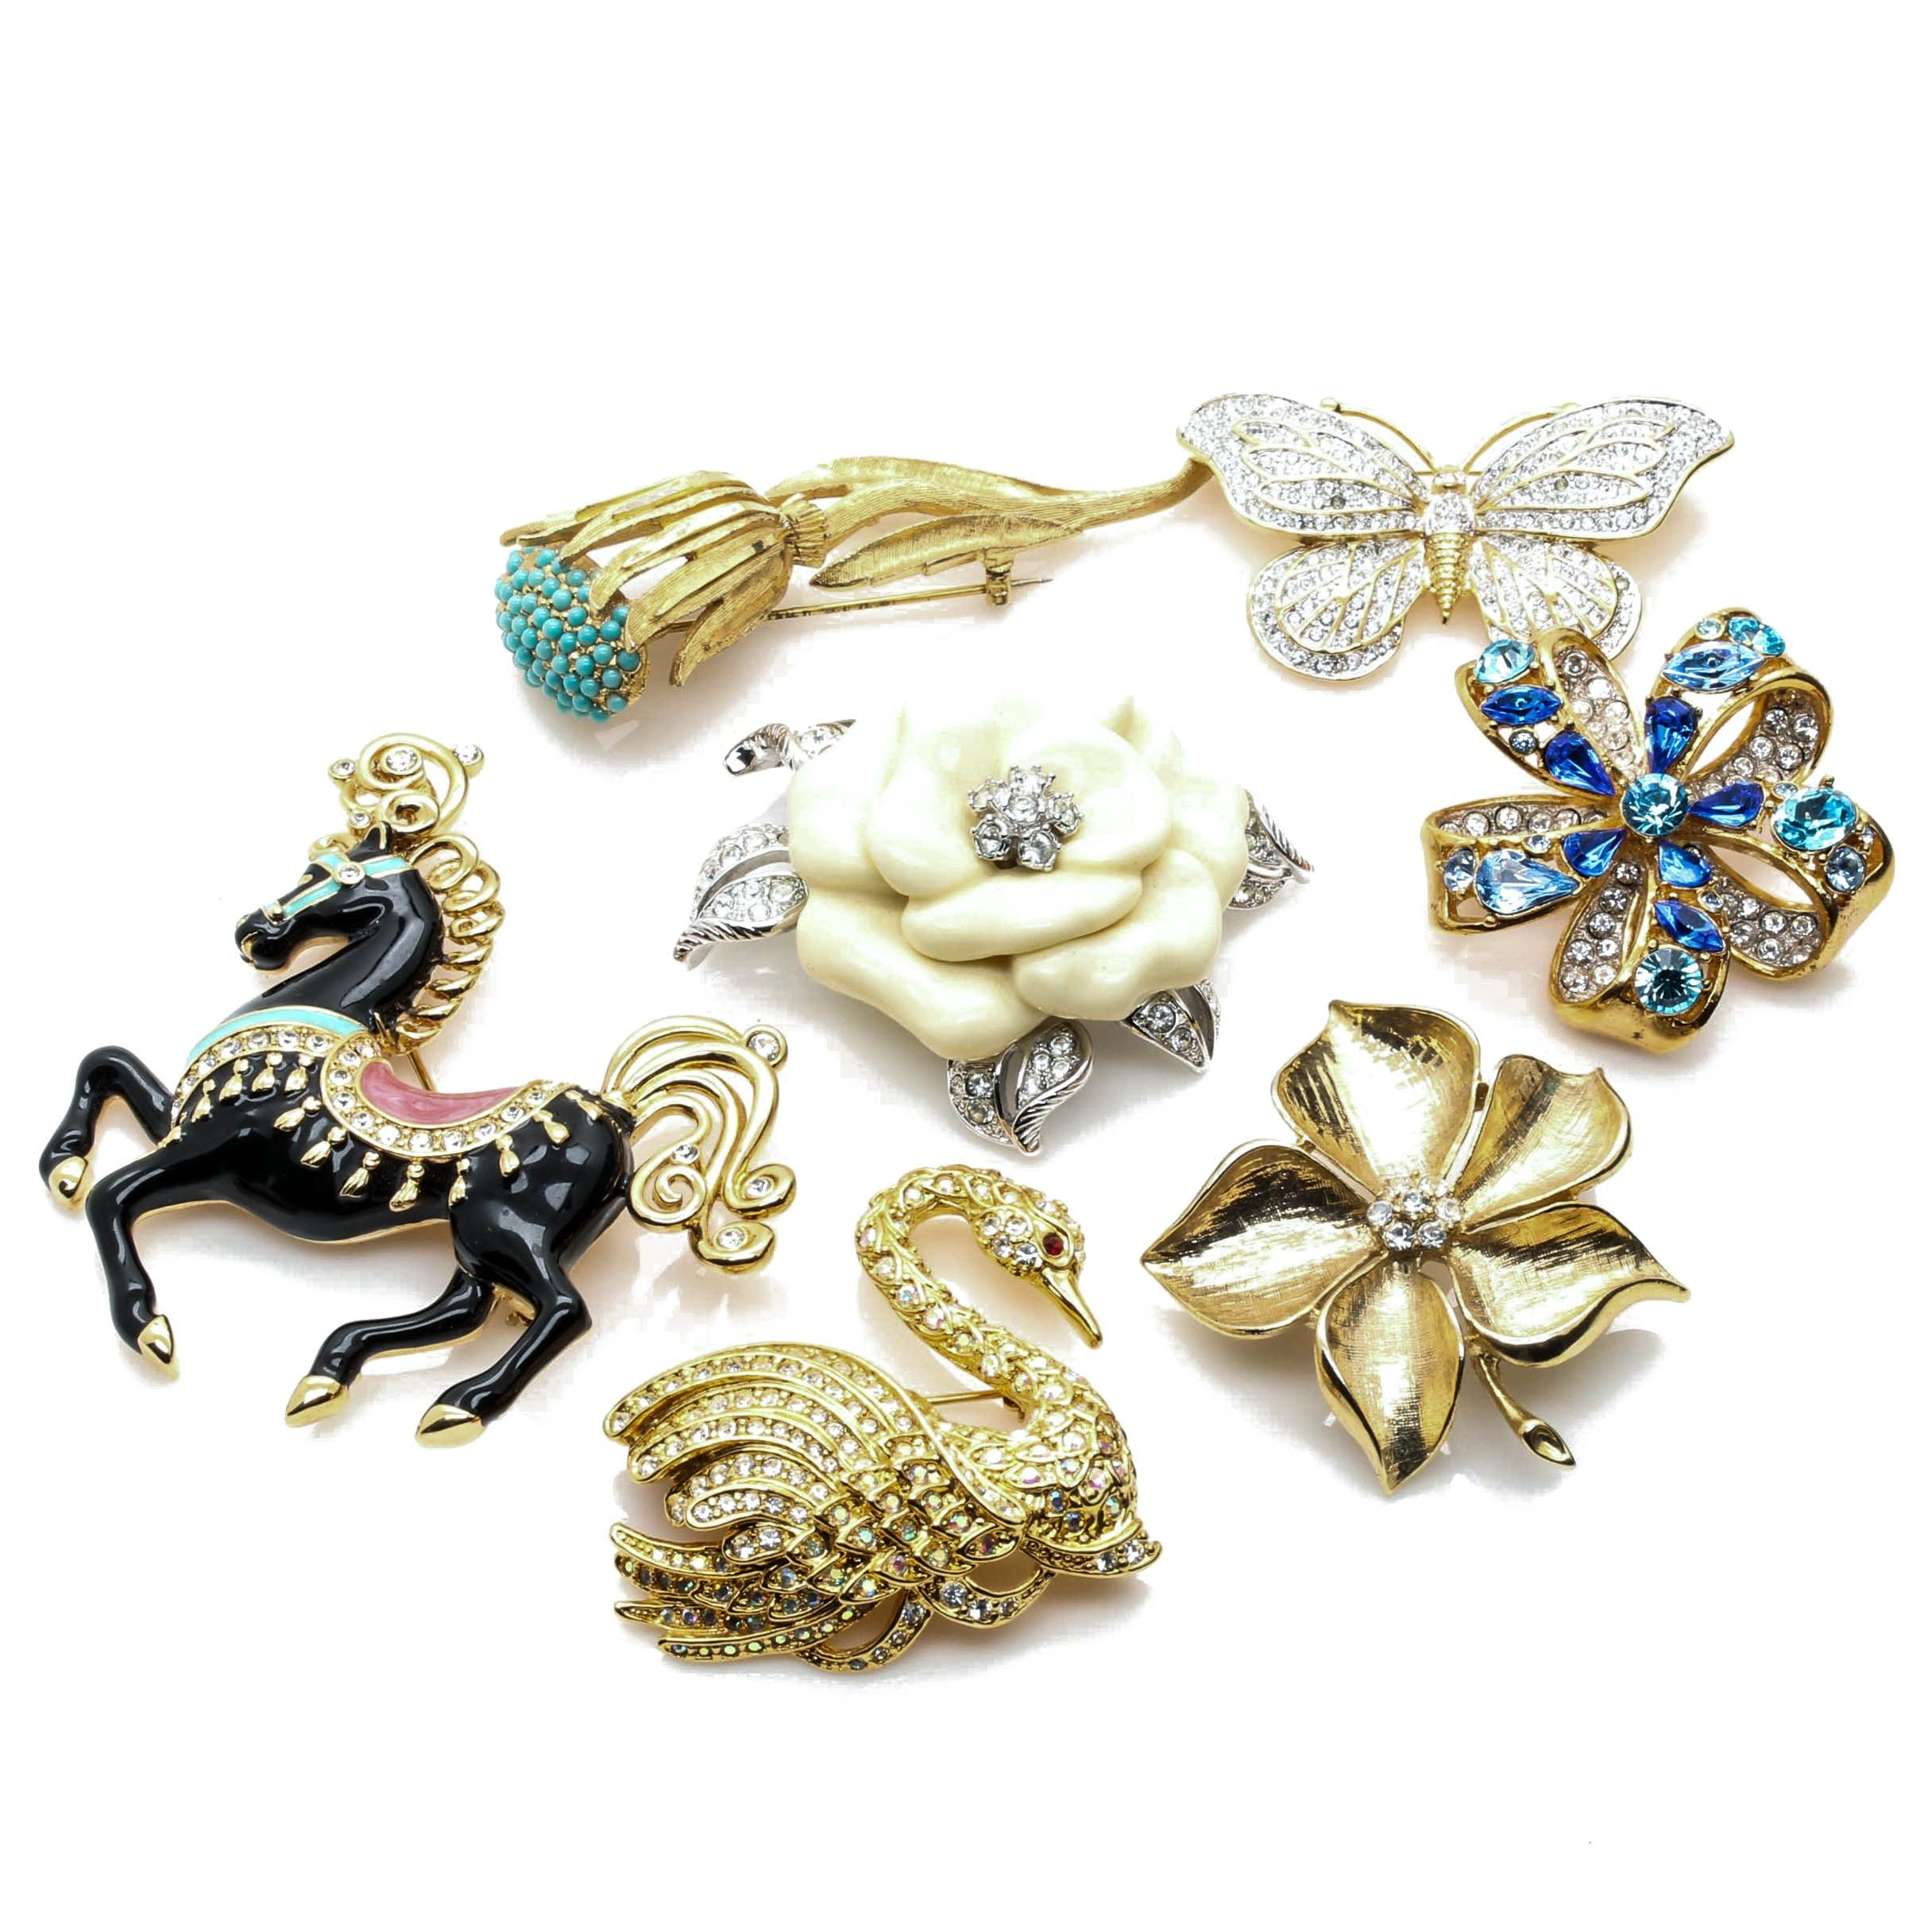 Gold Tone Glass and Enamel Brooches Including Bob Mackie and Nolan Miller